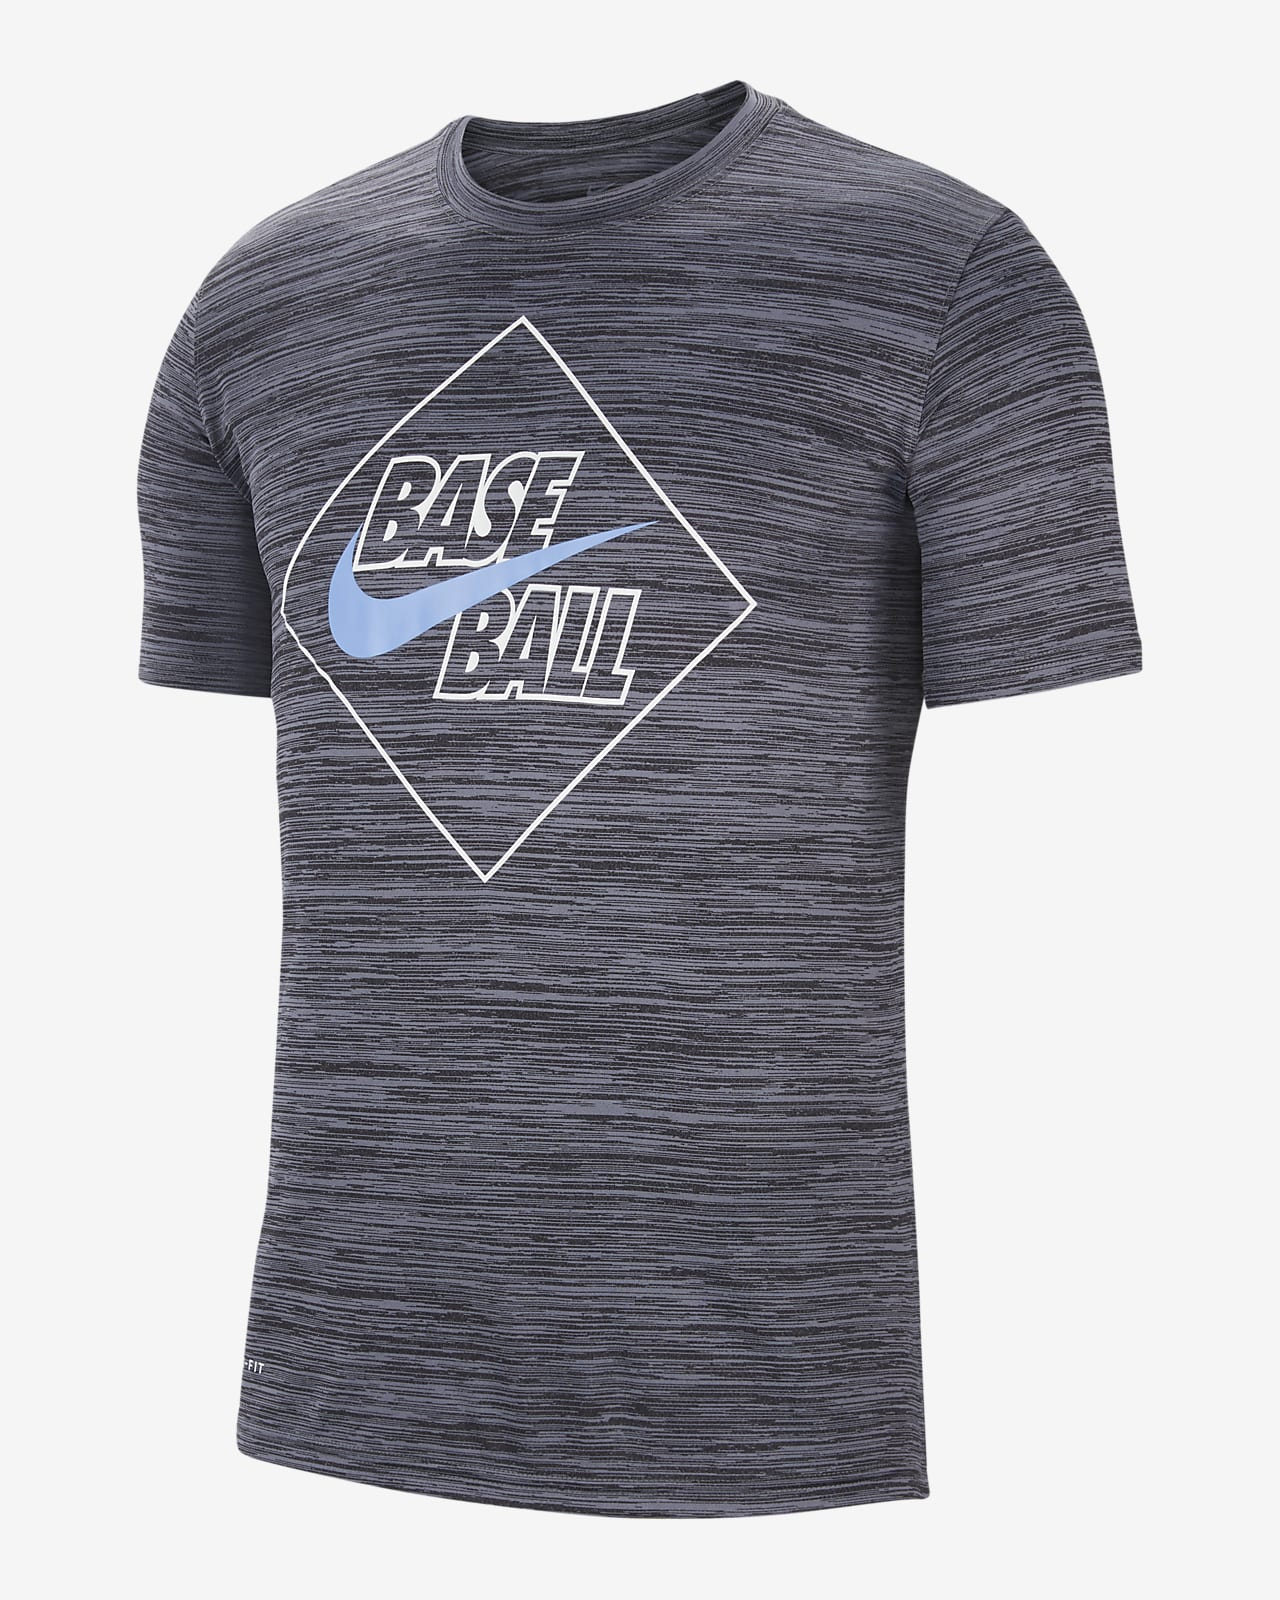 Nike Men's Baseball T-Shirt